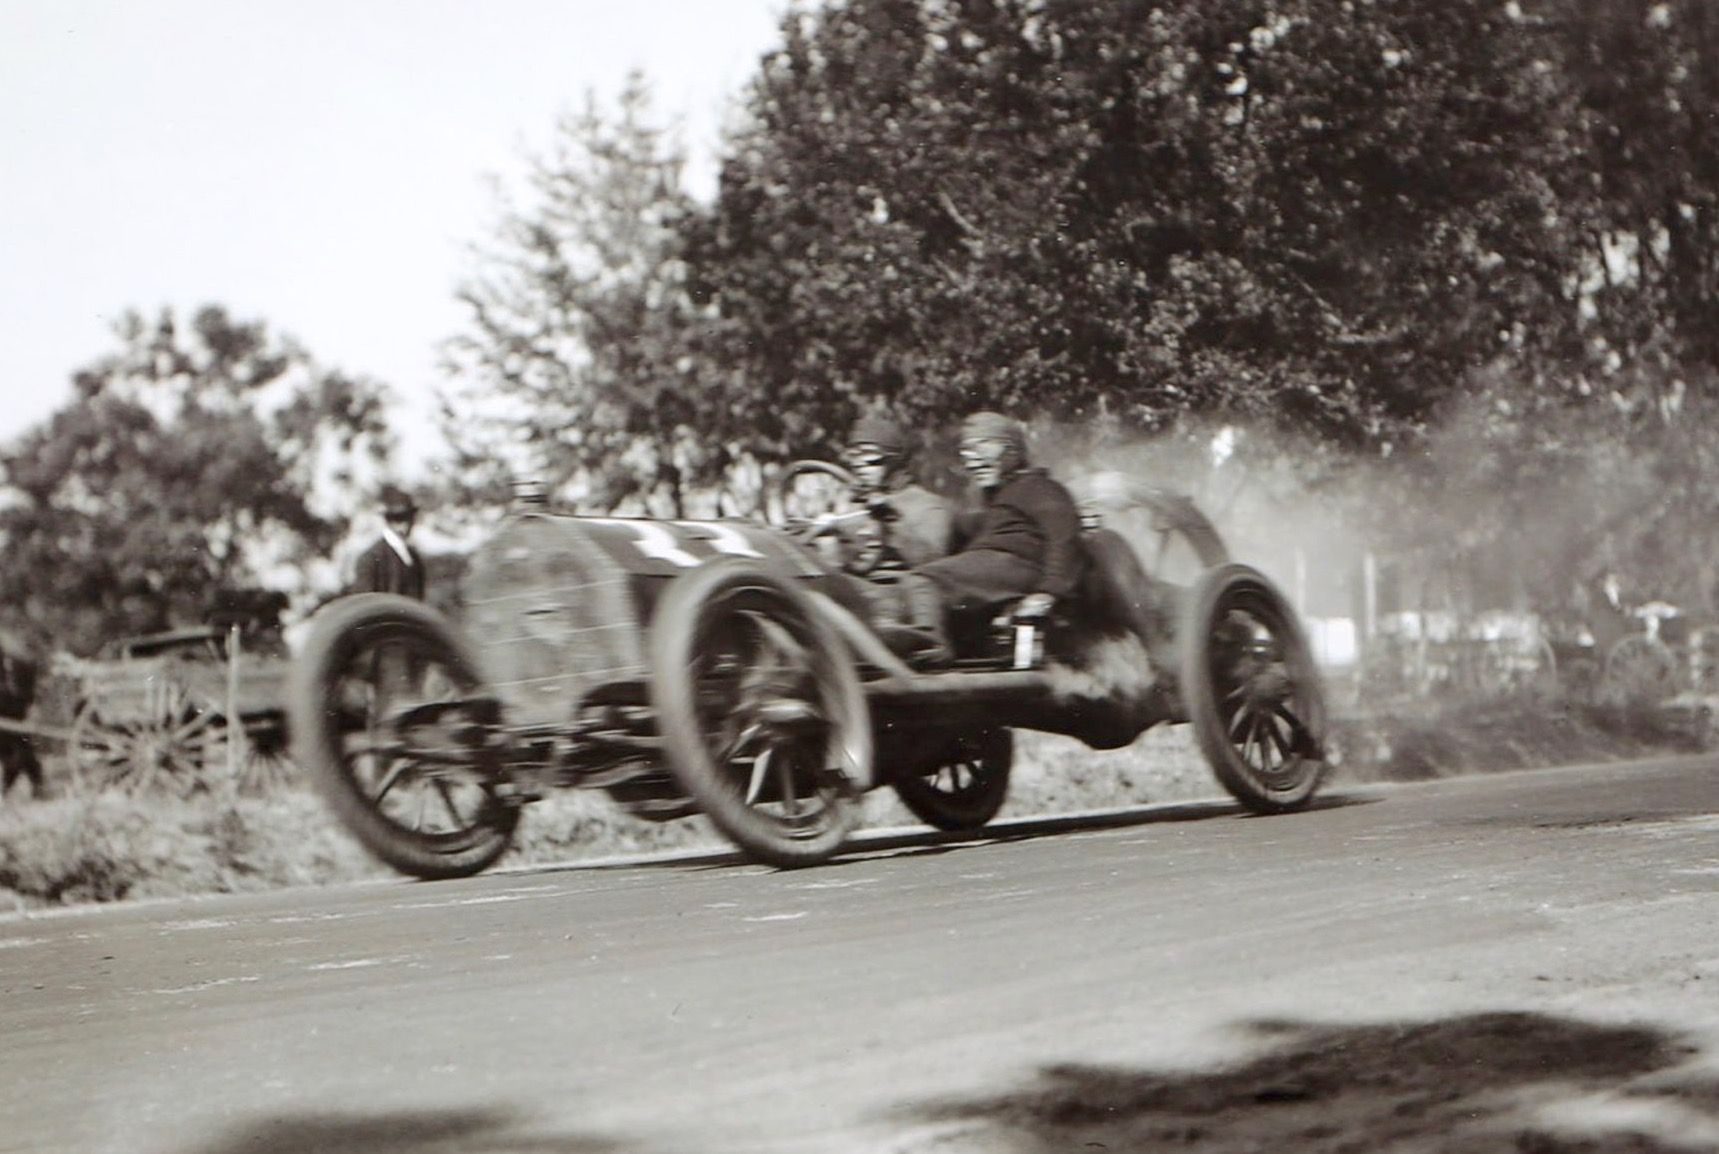 Pin by Wayne Penrod on *Early Racing* | Old race cars, Vintage ...